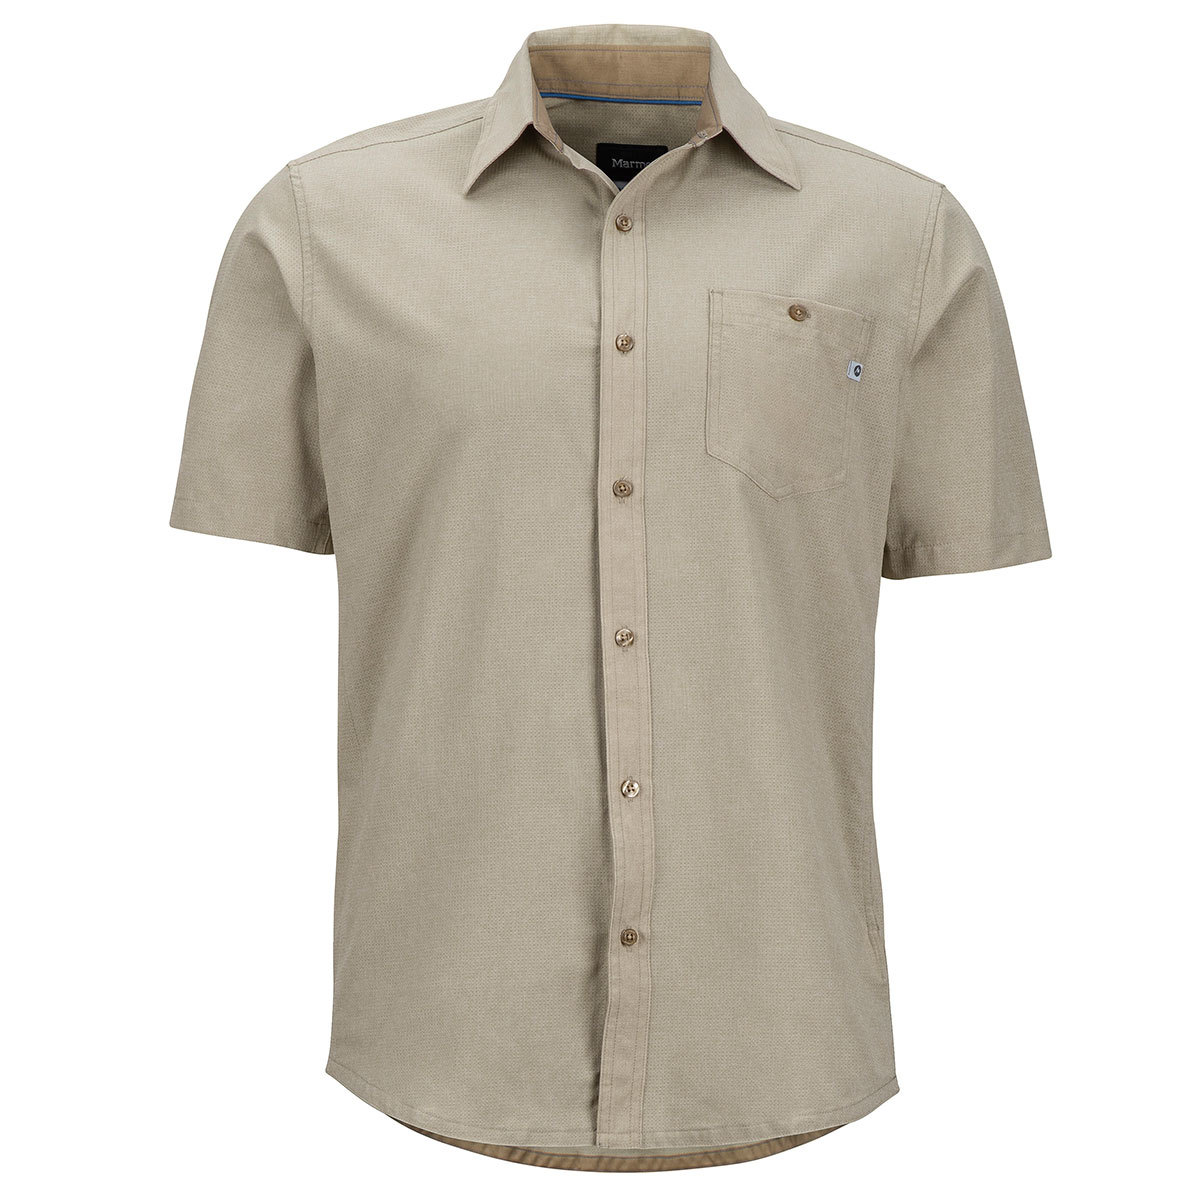 Marmot Men's Windshear Short-Sleeve Shirt - Brown, XL